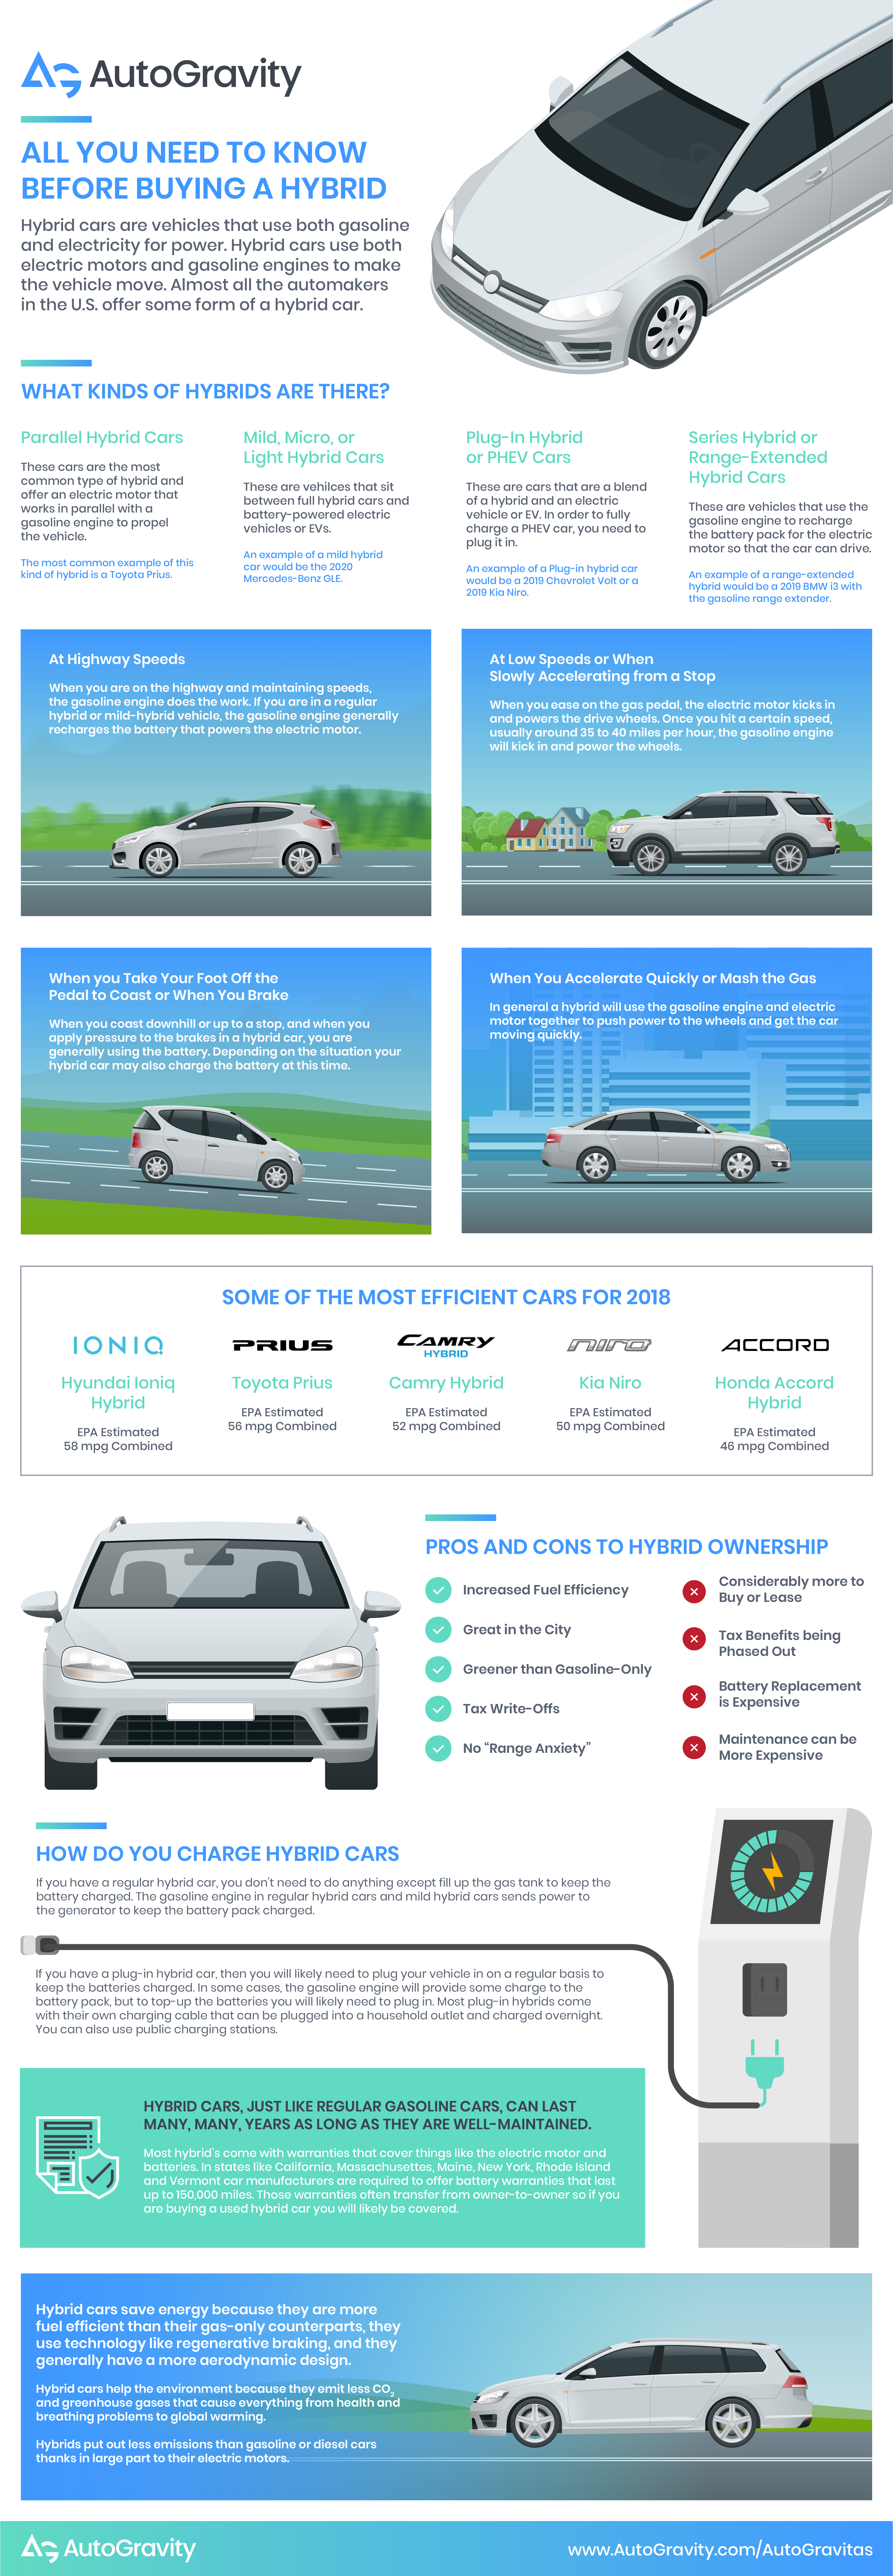 Hybrid Cars – All You Need to Know Before Buying One